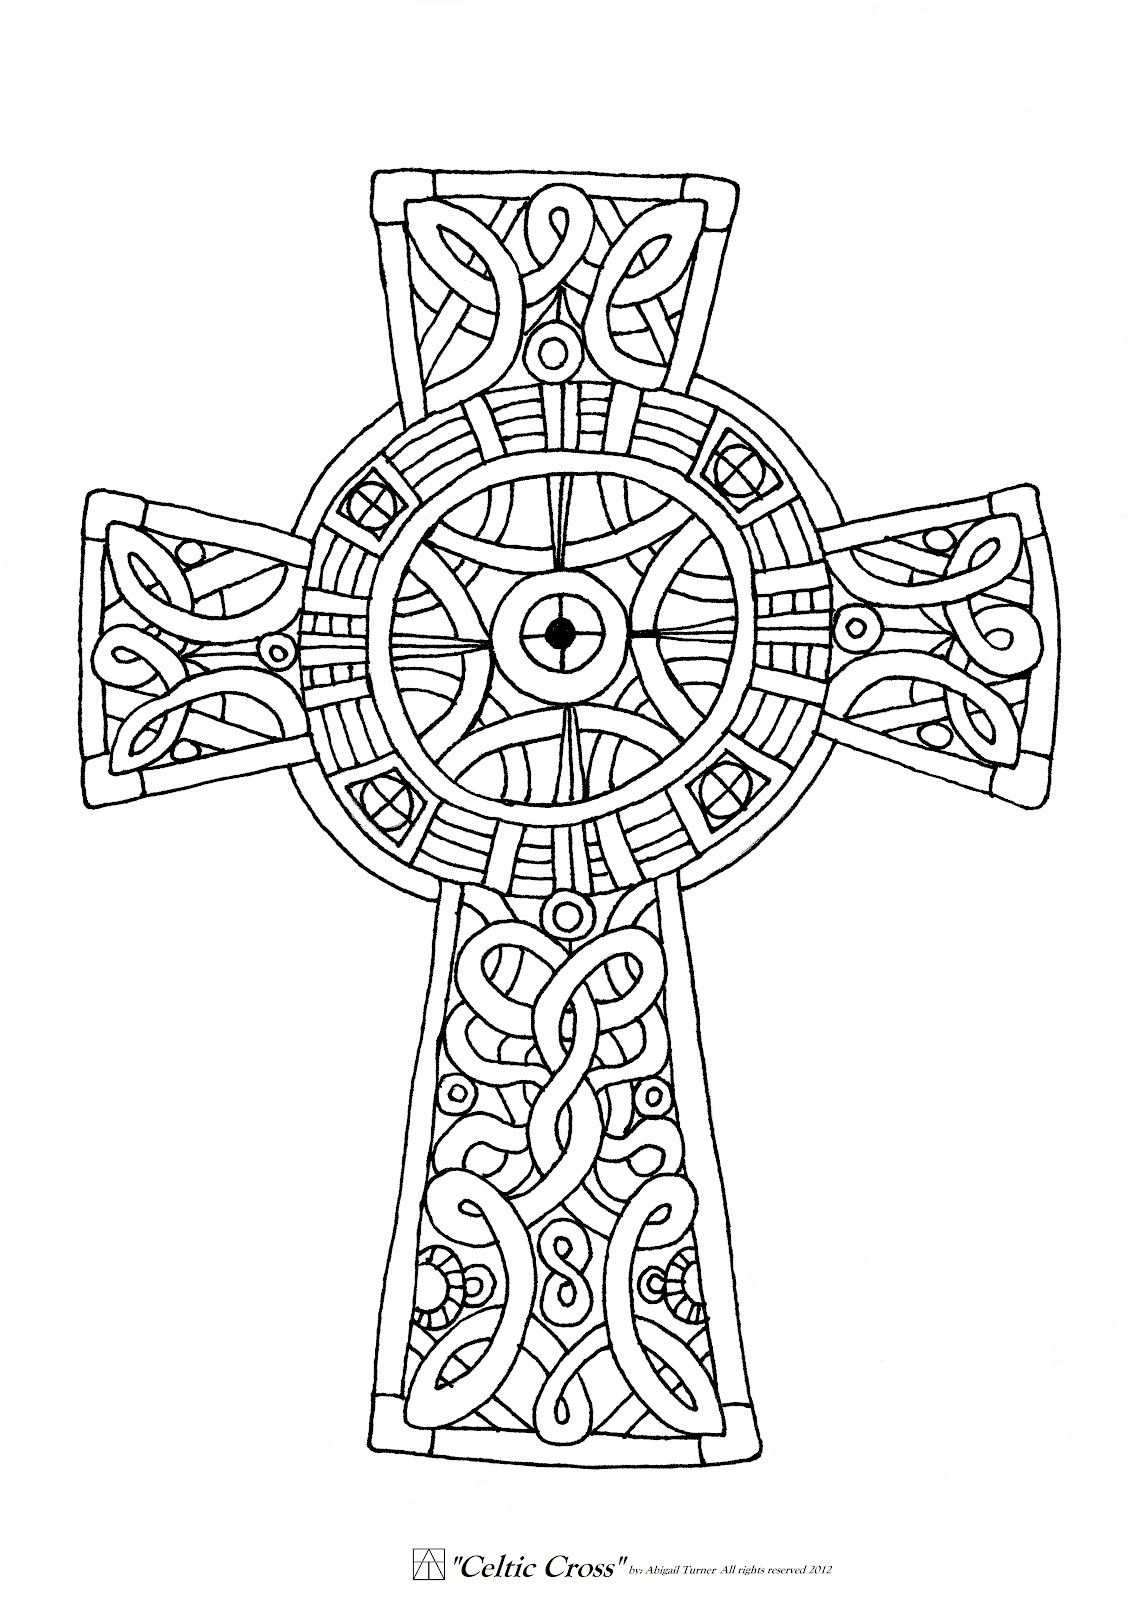 Coloring pages for adults crosses - Free Printable Celtic Cross Coloring Pages